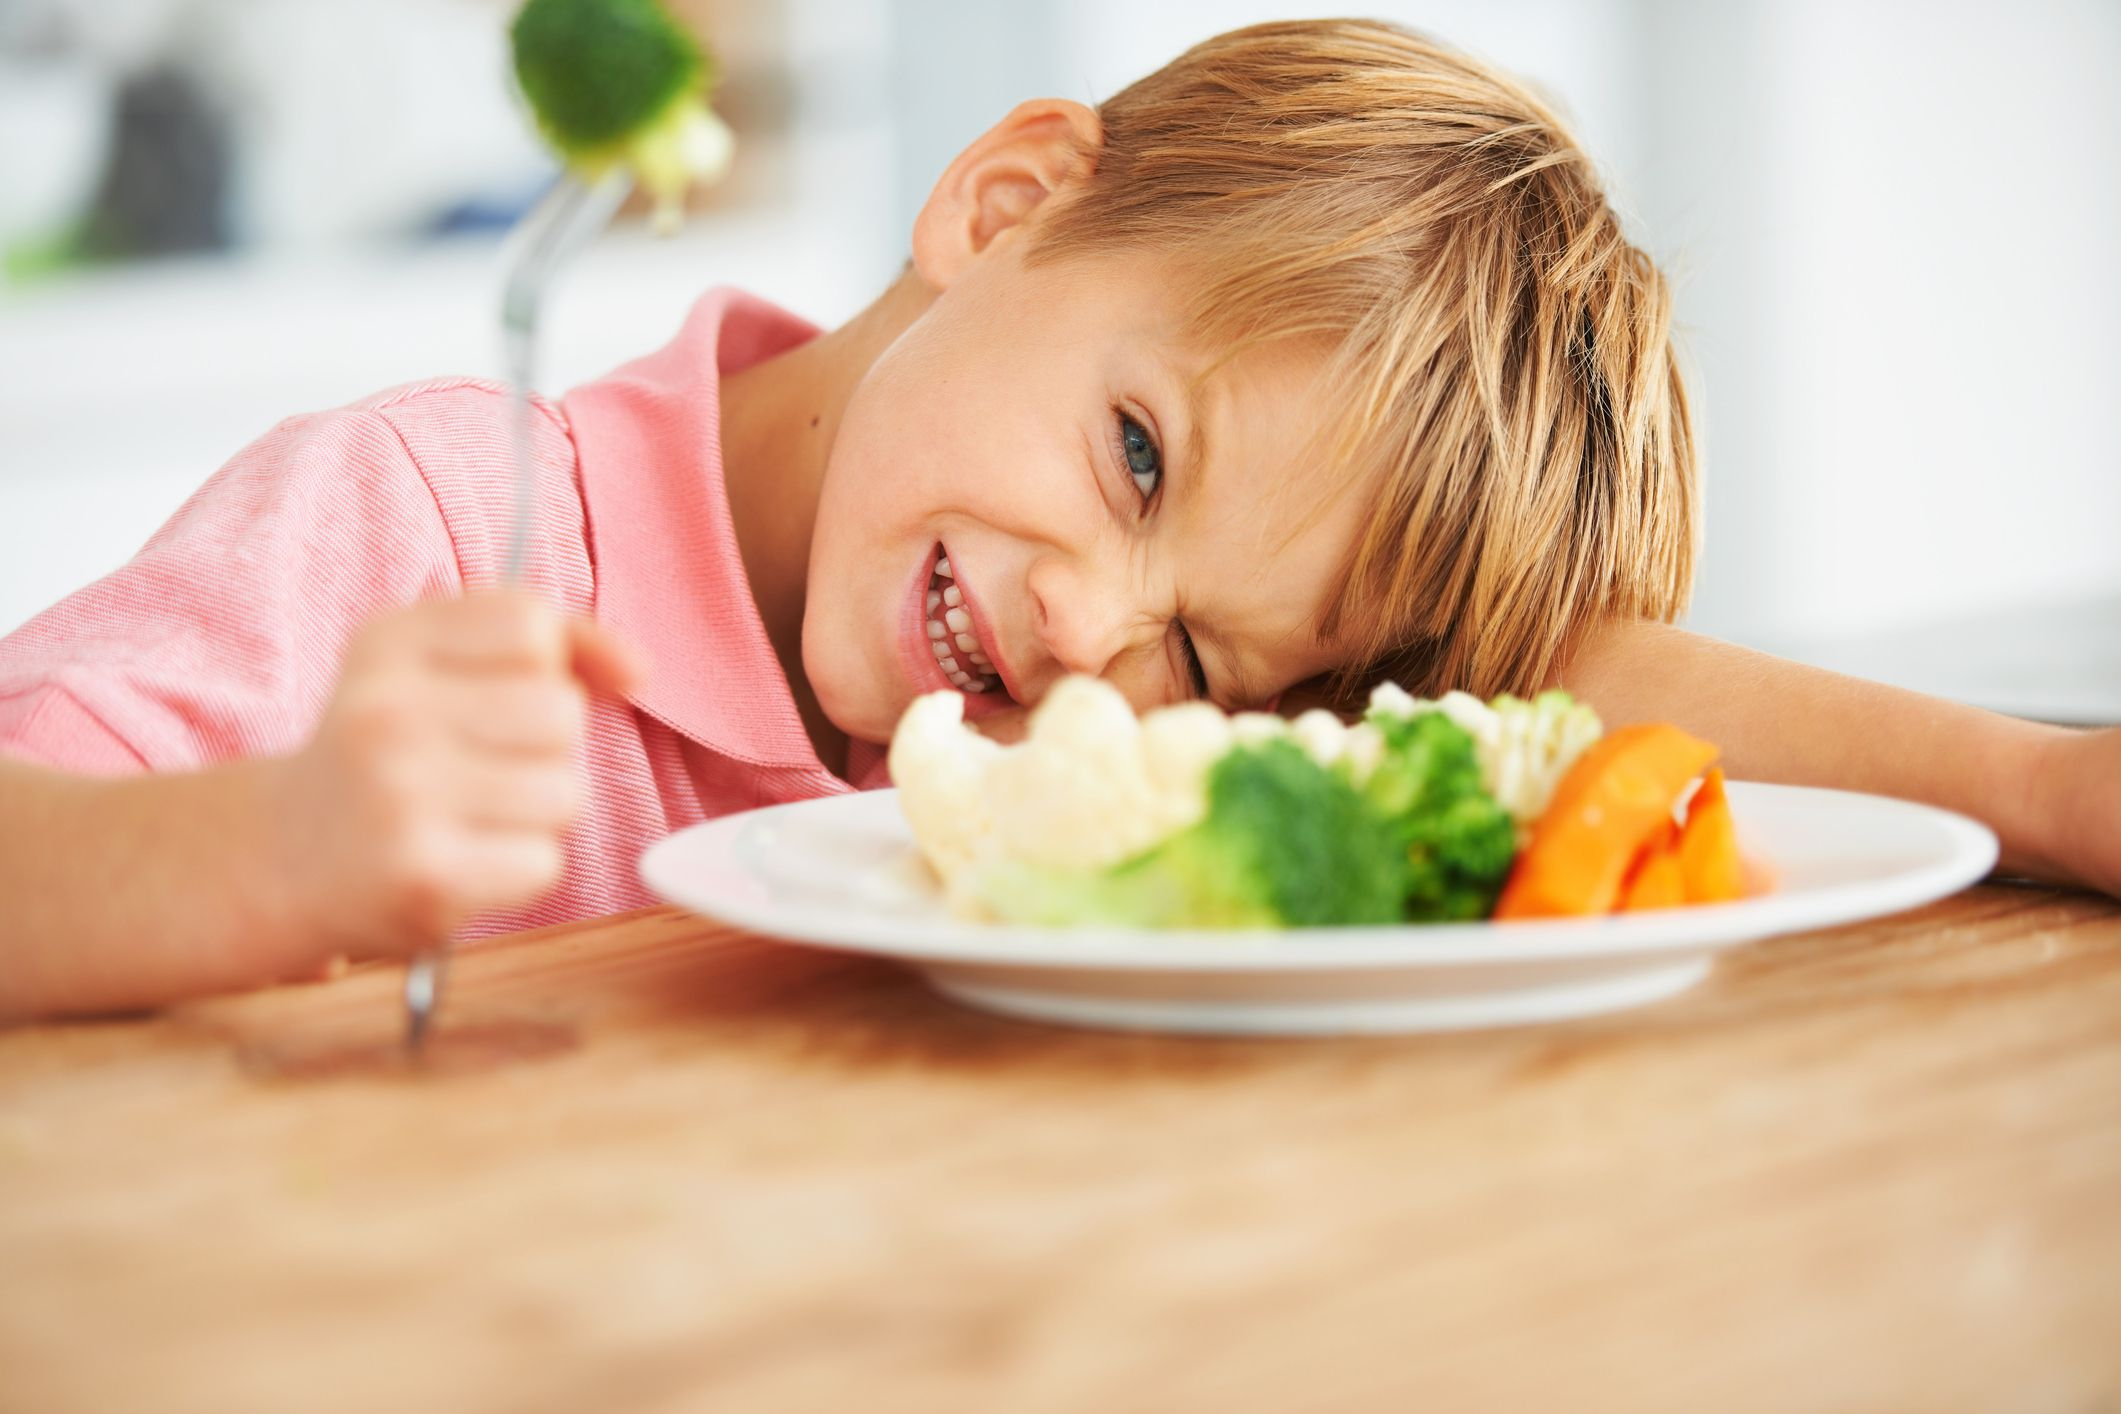 The 15 Best Ways for Parents to Handle Fussy Eaters